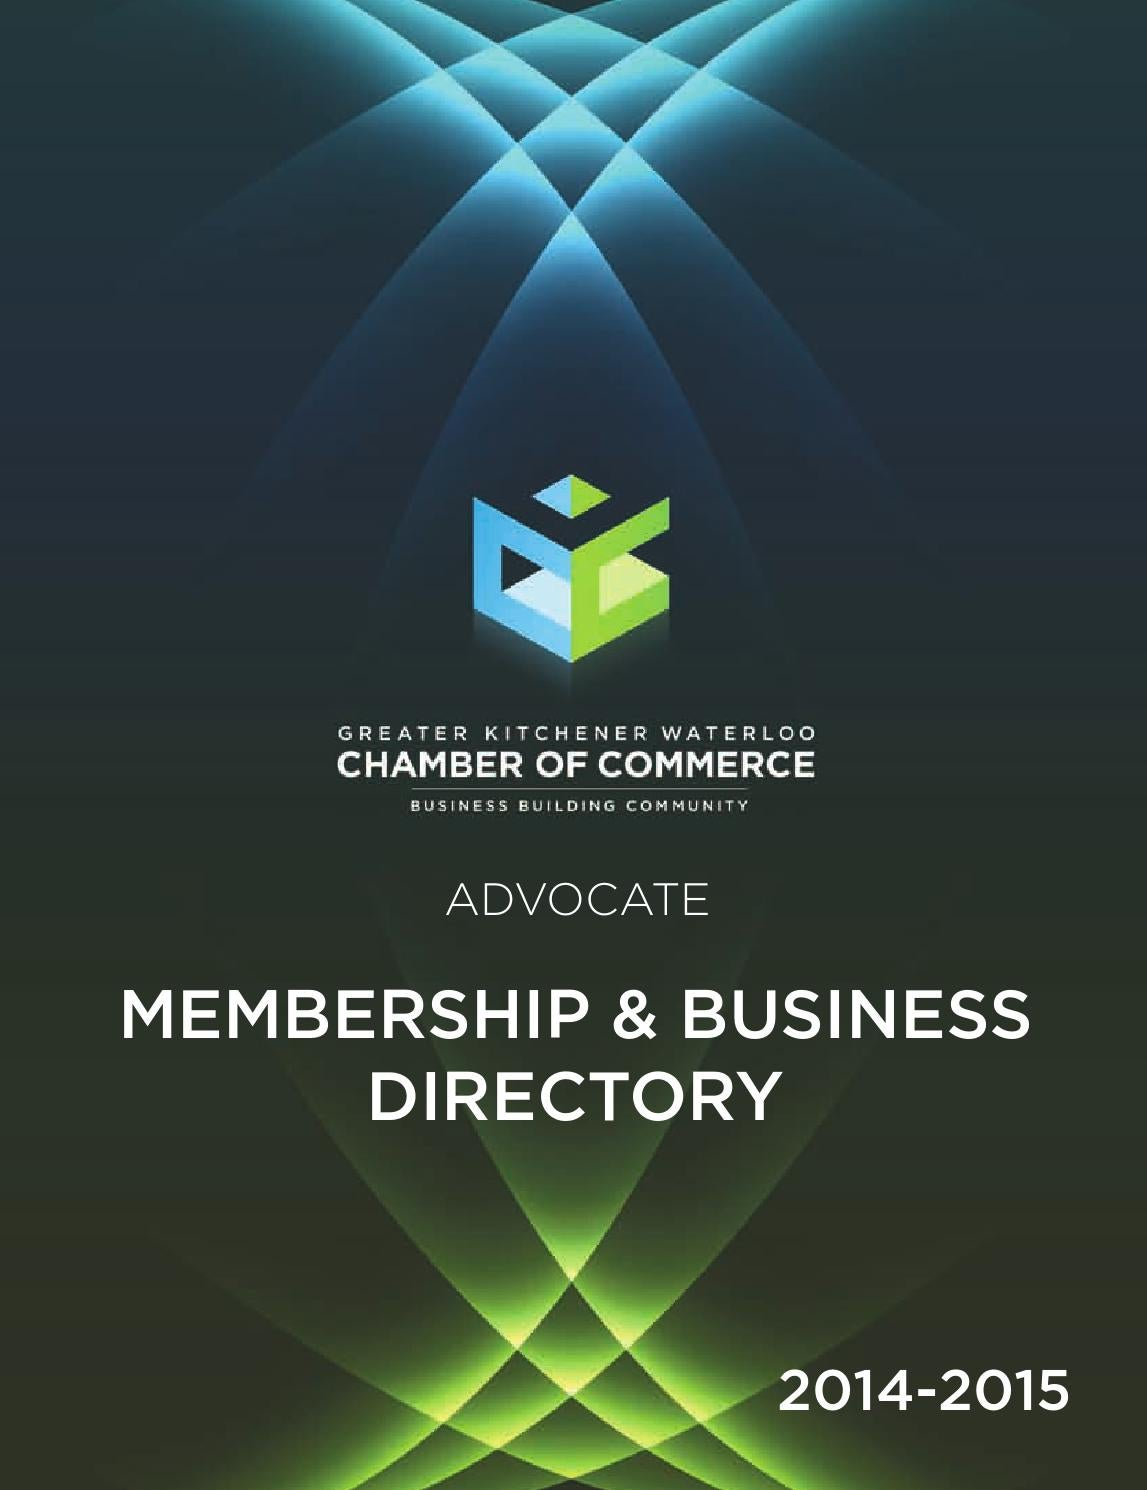 Small Business Centre Kitchener 2014 Membership Business Directory By Tina Geisel Issuu